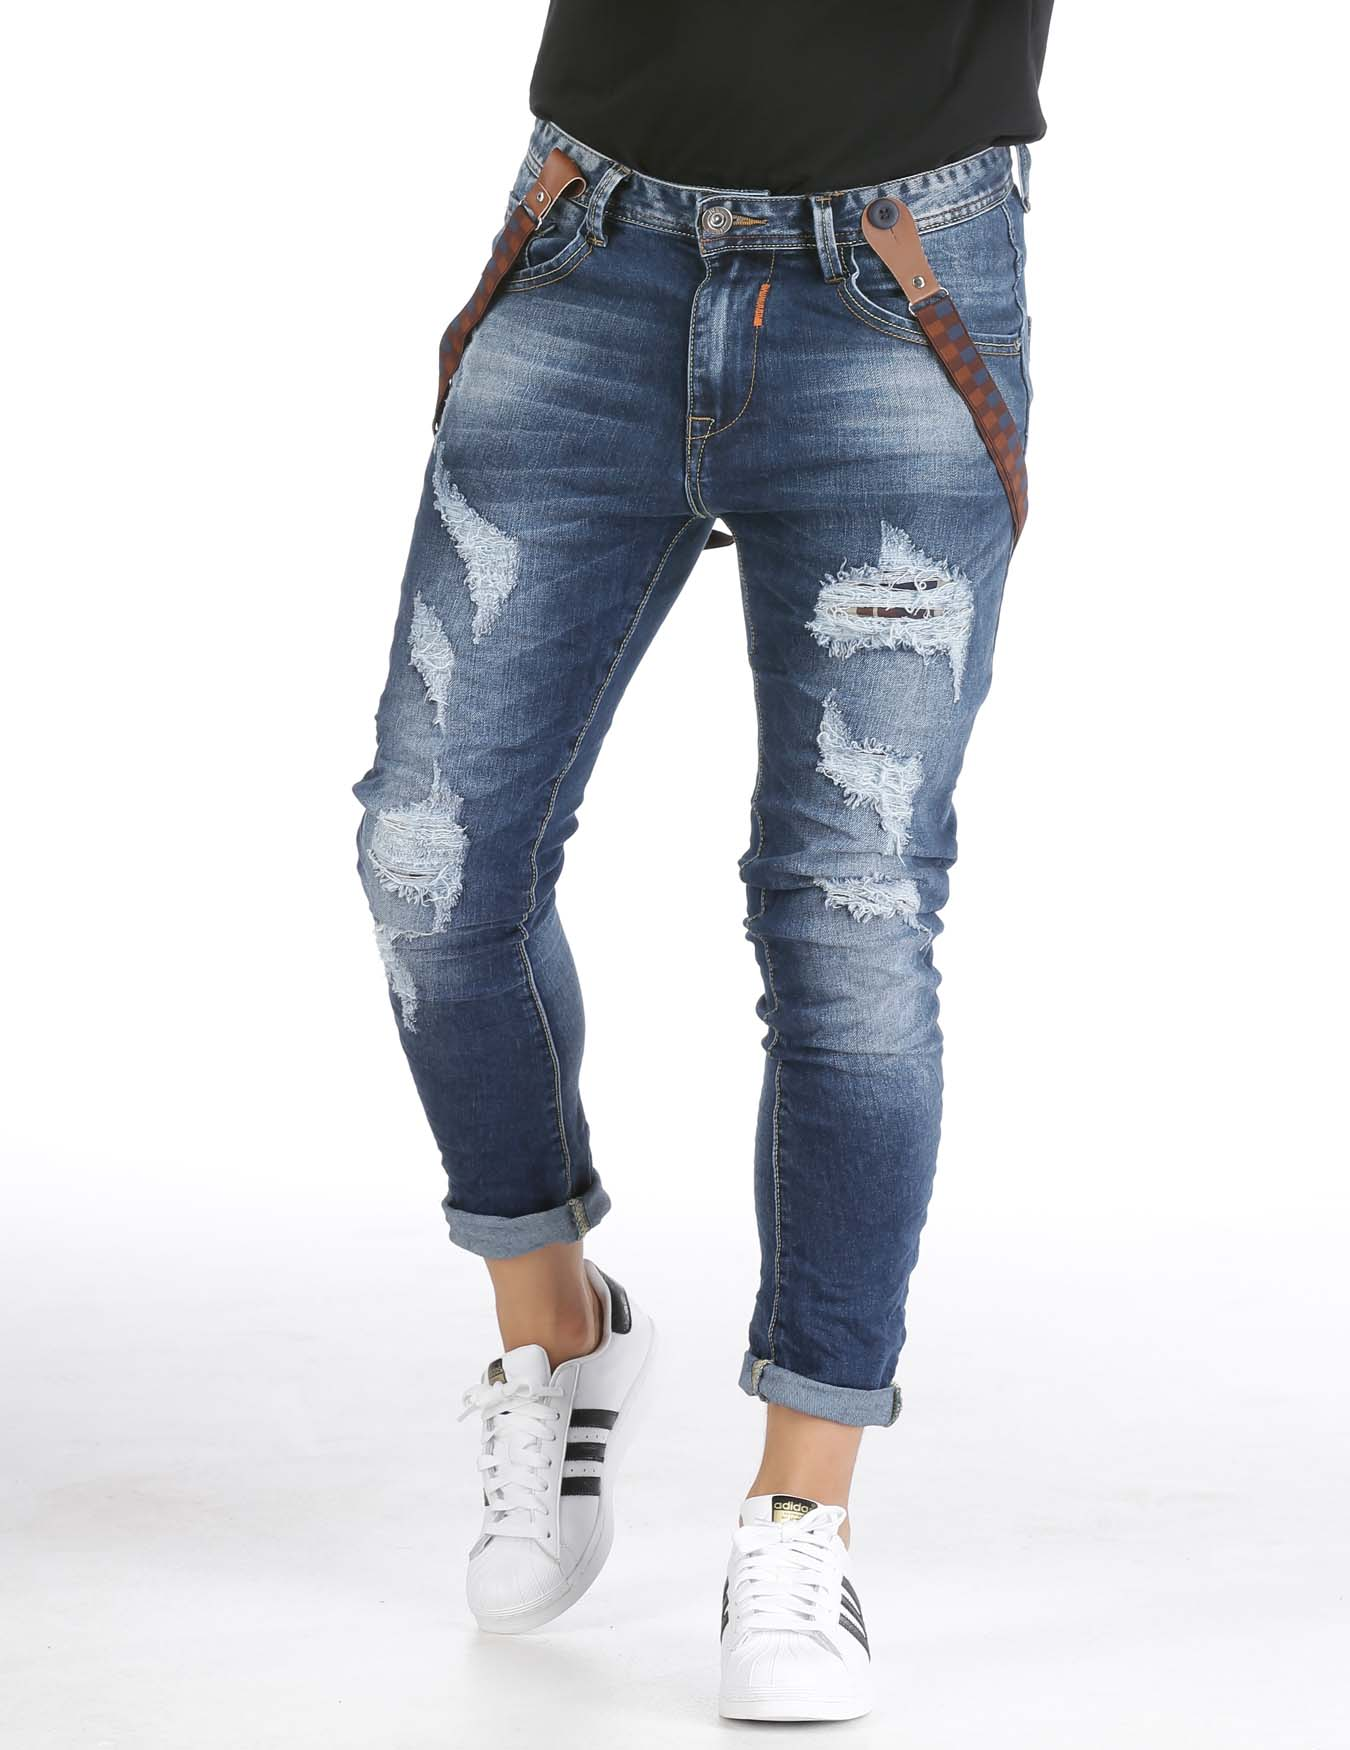 Ανδρικό Jean Παντελόνι Deep Down Low - JabaStore.gr bca9614e83f